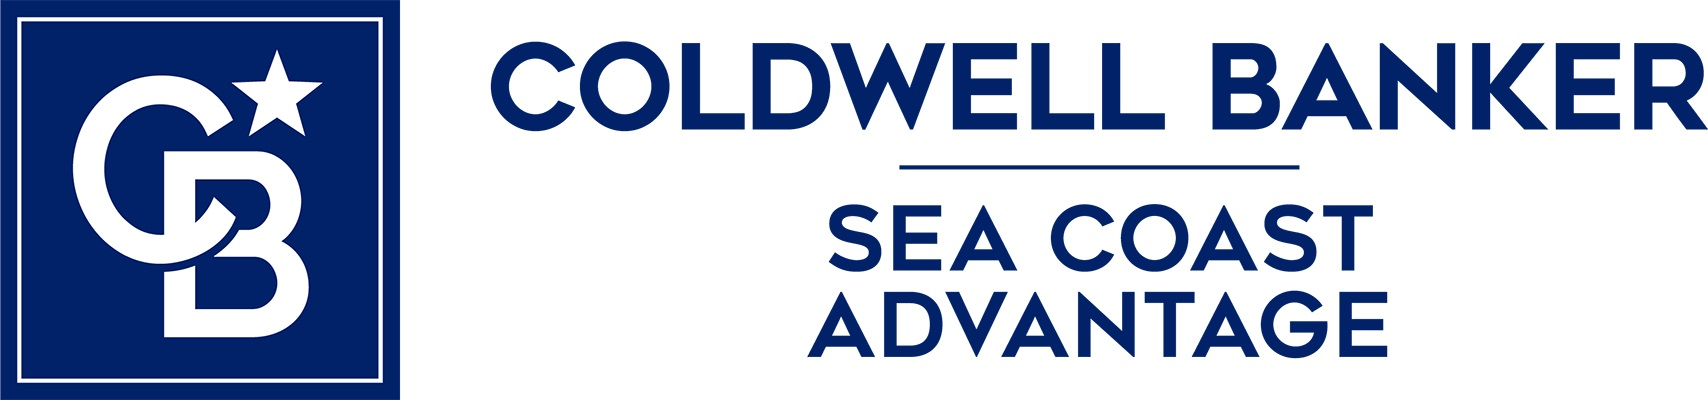 Margaret Smith - Coldwell Banker Sea Coast Advantage Realty Logo